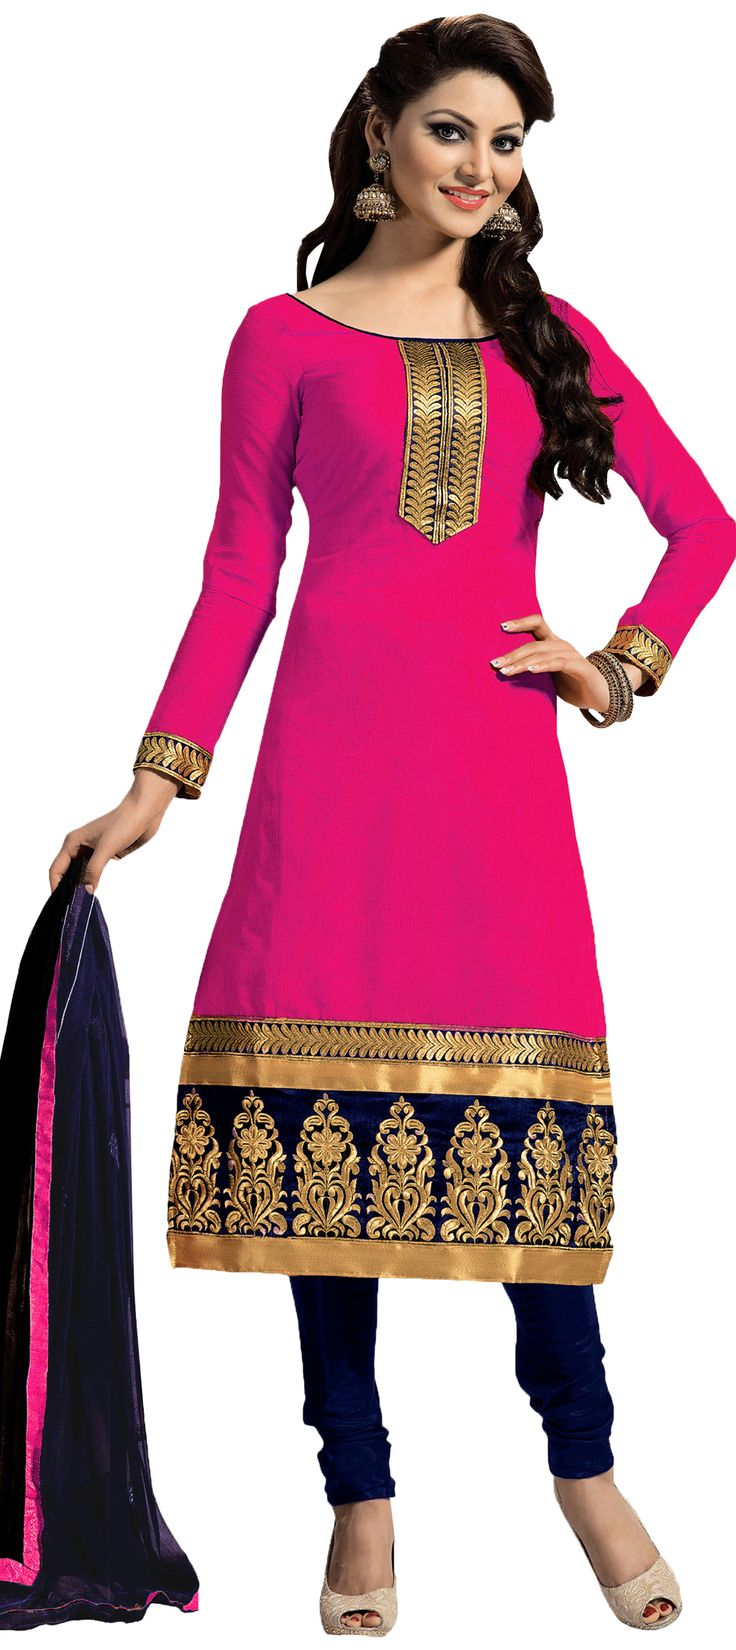 451184: Pink and Majenta color family unstitched Party Wear Salwar Kameez .